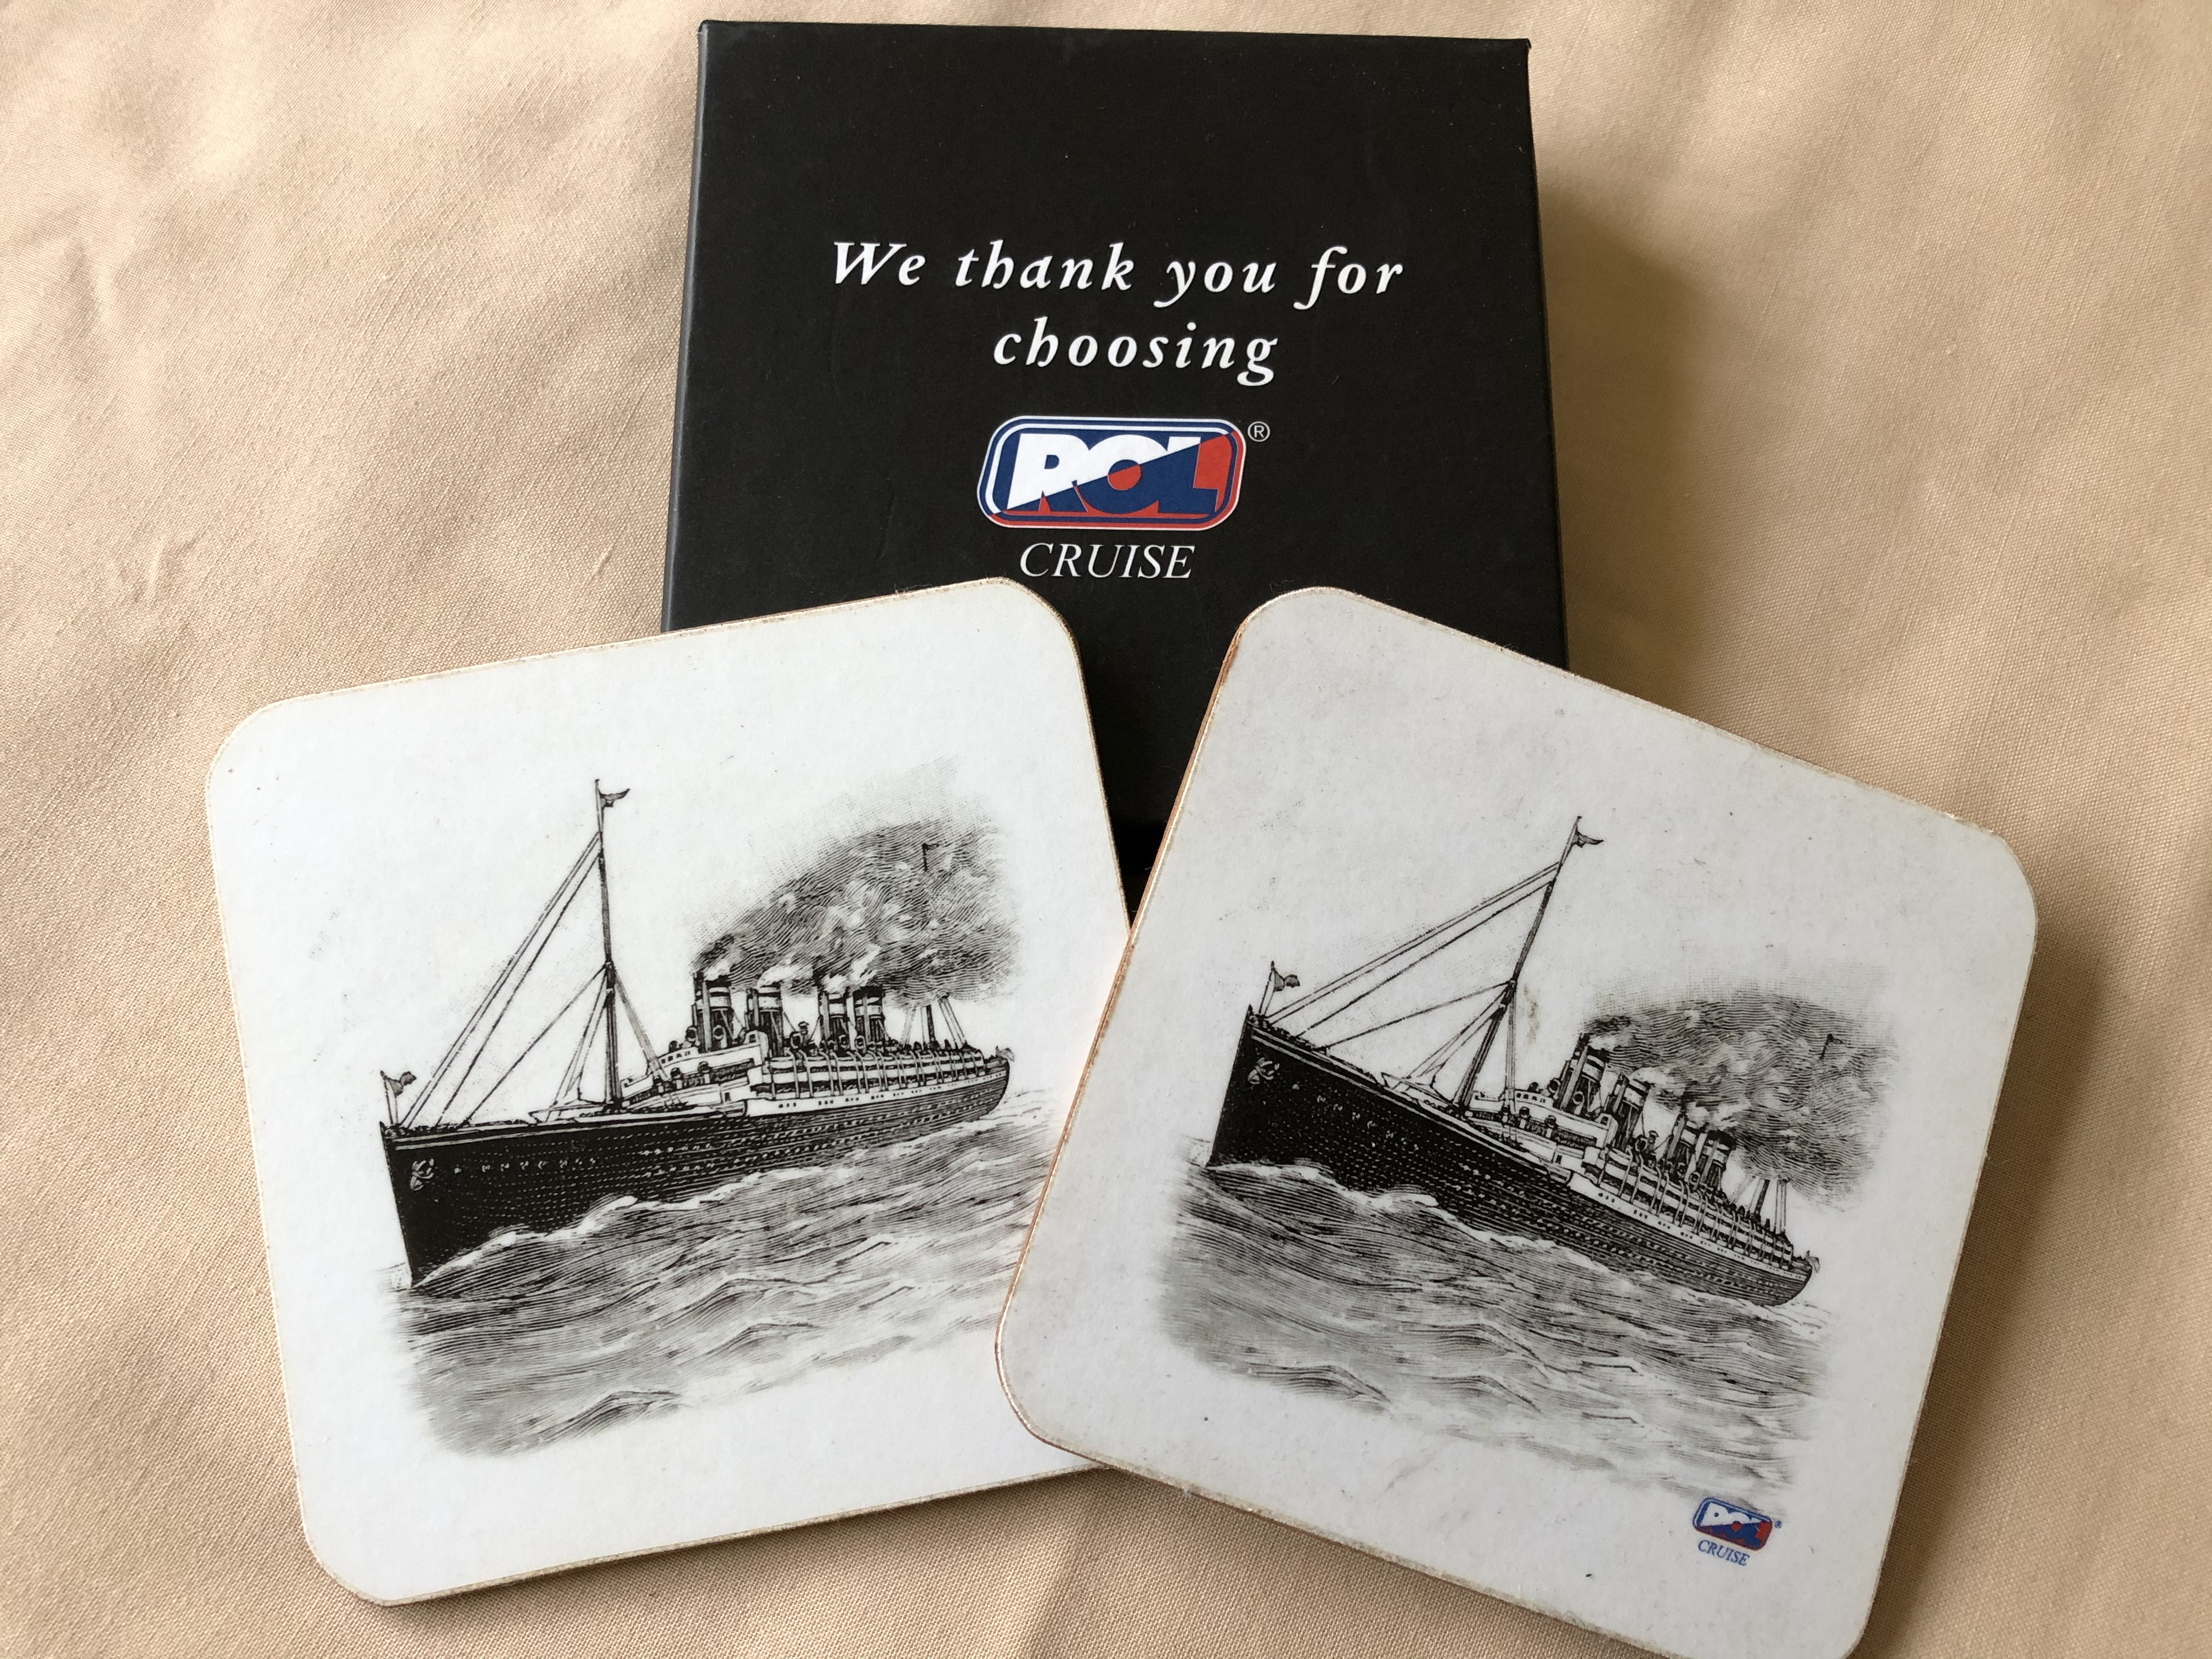 PAIR OF SOUVENIR MATS FROM THE ROL CRUISE BOOKING COMPANY